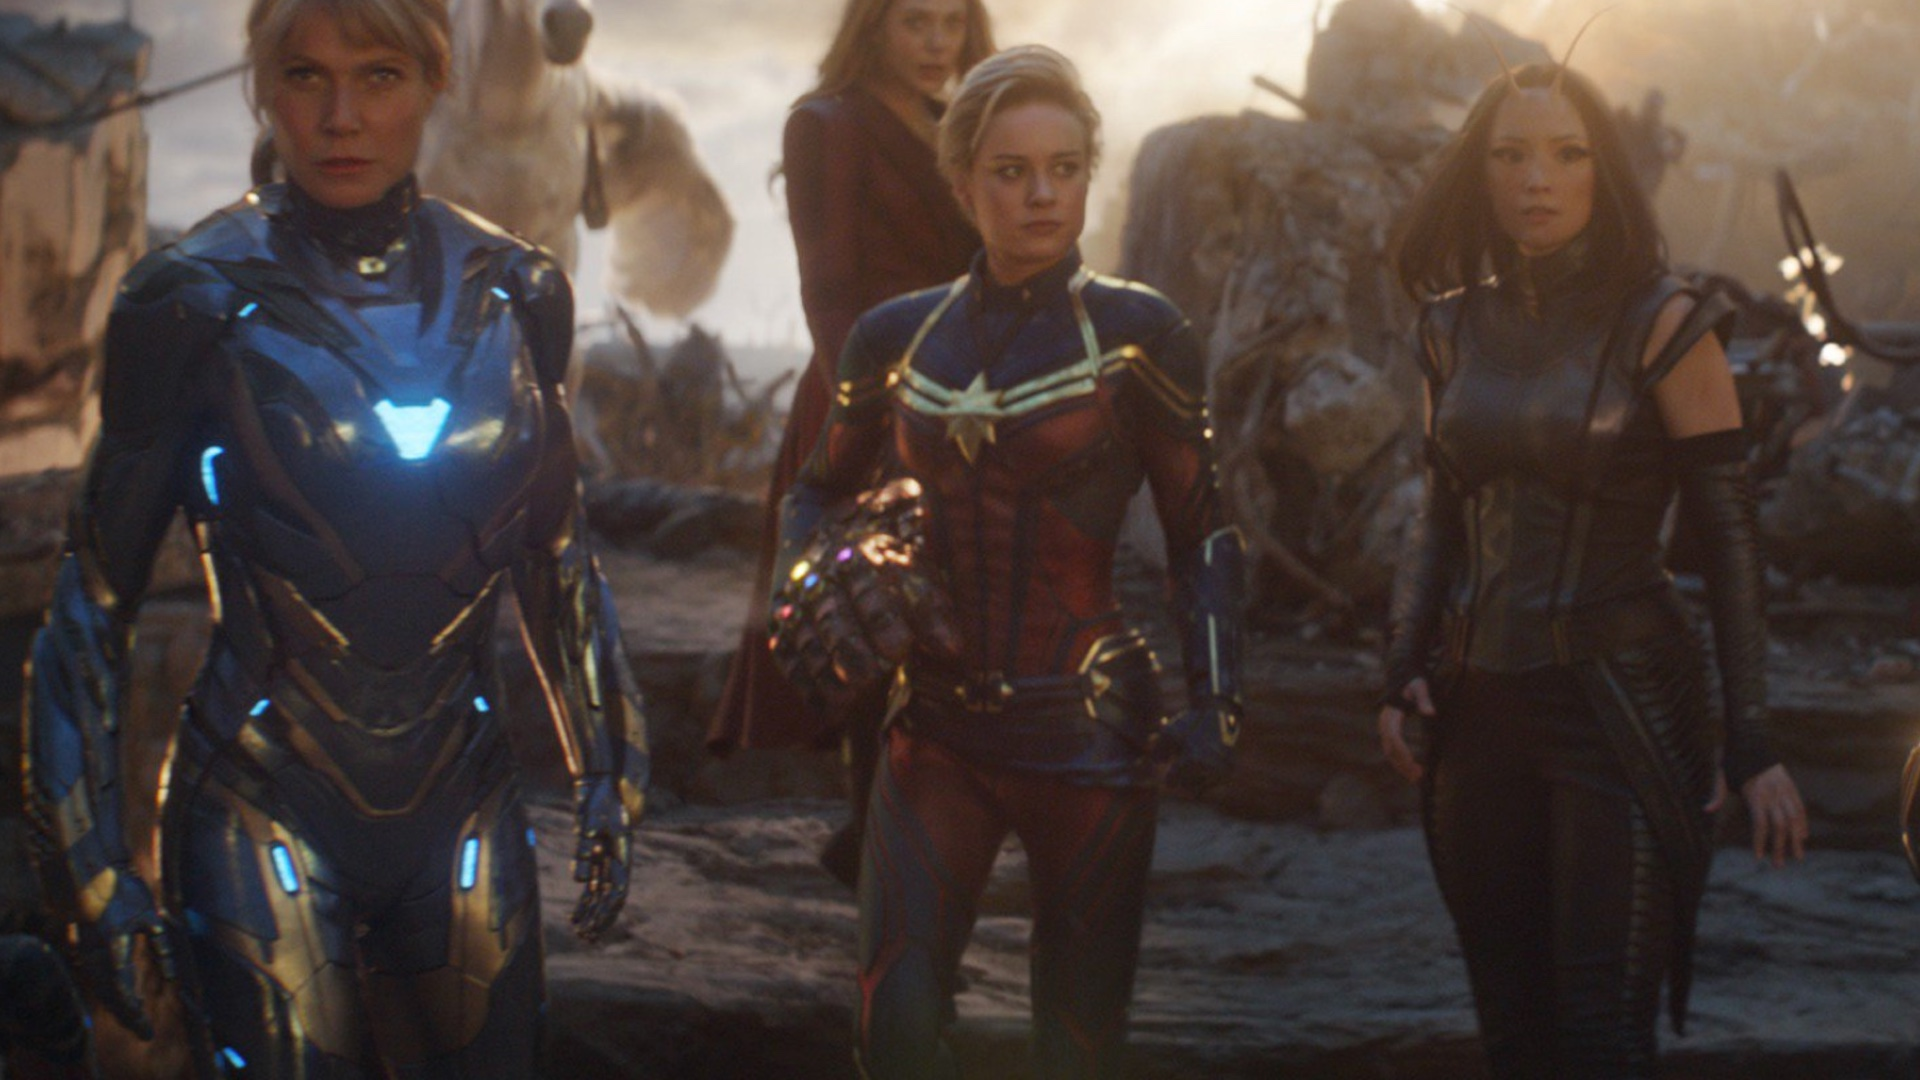 Captain Marvel S Suit Was Entirely Cgi In Avengers Endgame Geektyrant